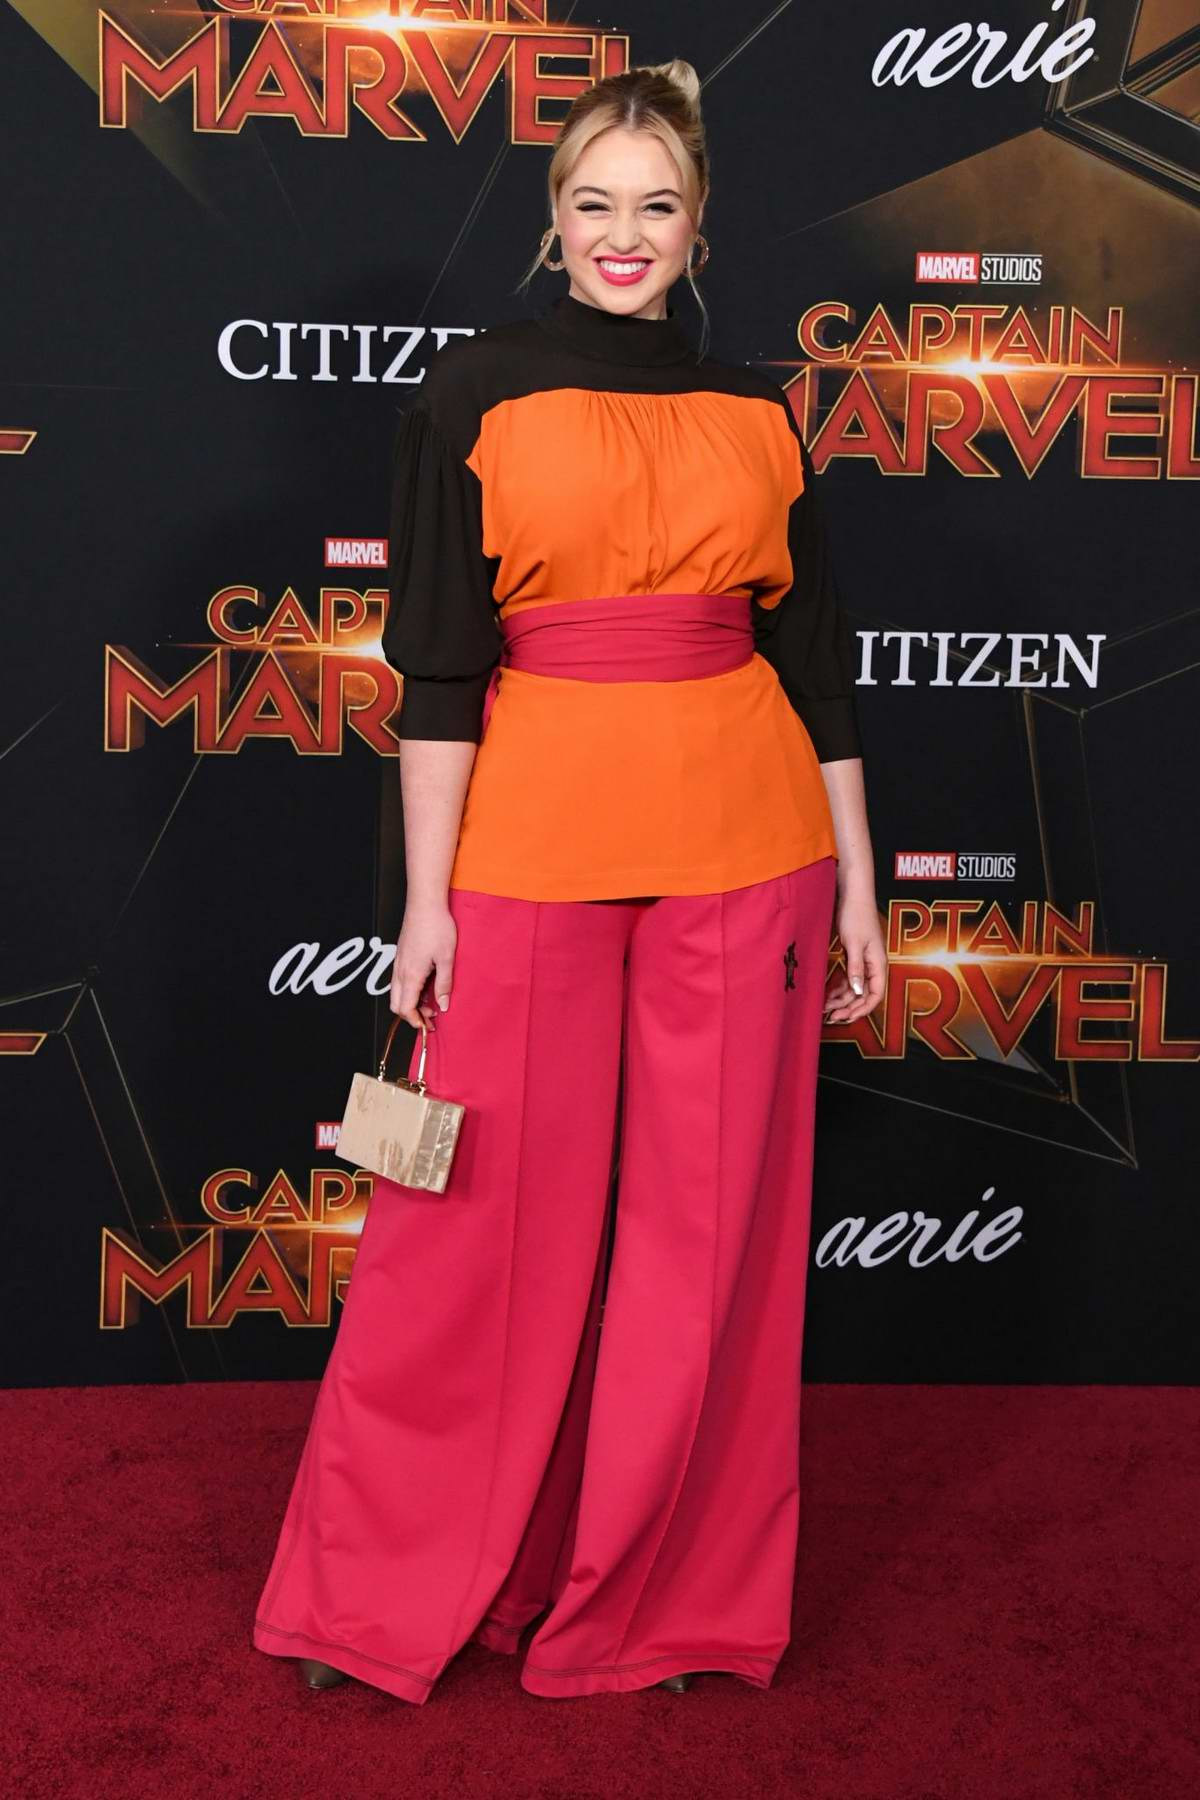 Iskra Lawrence attends the World Premiere of 'Captain Marvel' at the El Capitan Theatre in Hollywood, California